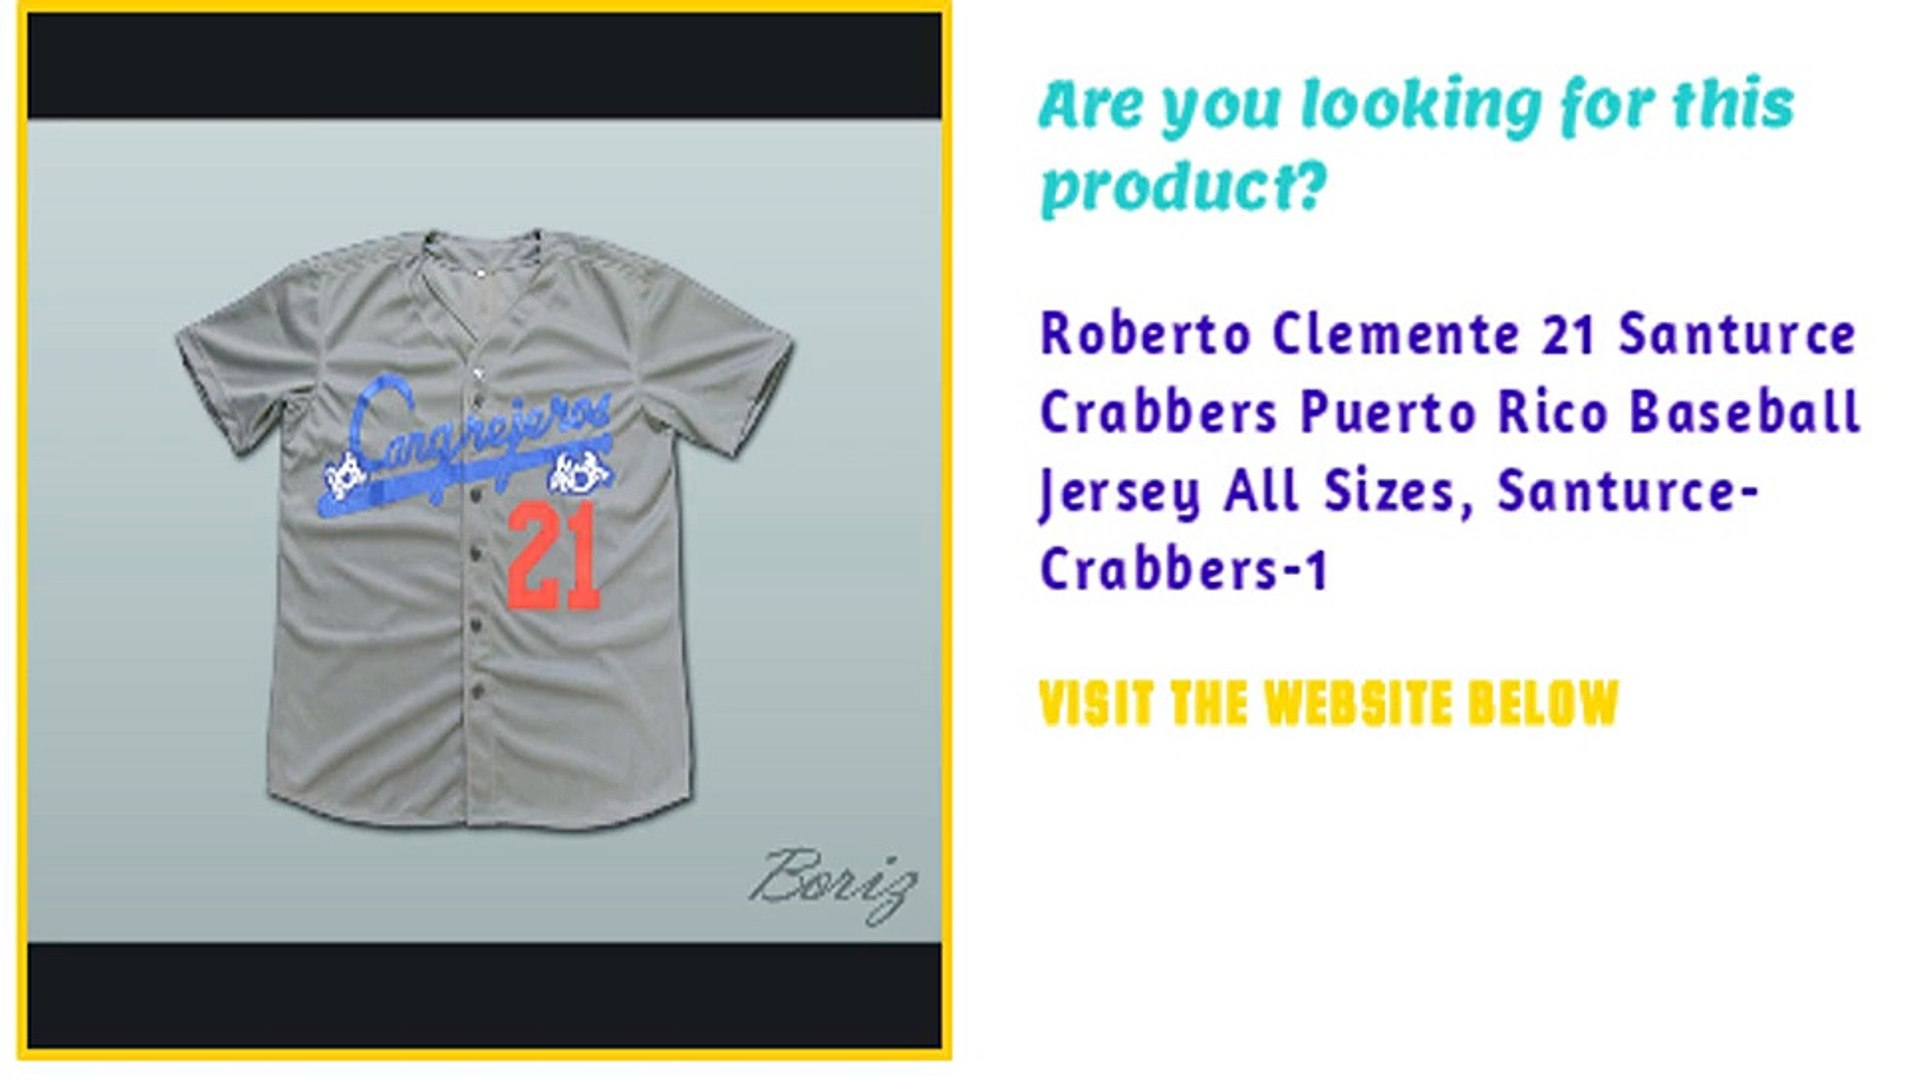 reputable site 44d29 01969 Roberto Clemente 21 Santurce Crabbers Puerto Rico Baseball Jersey All Sizes